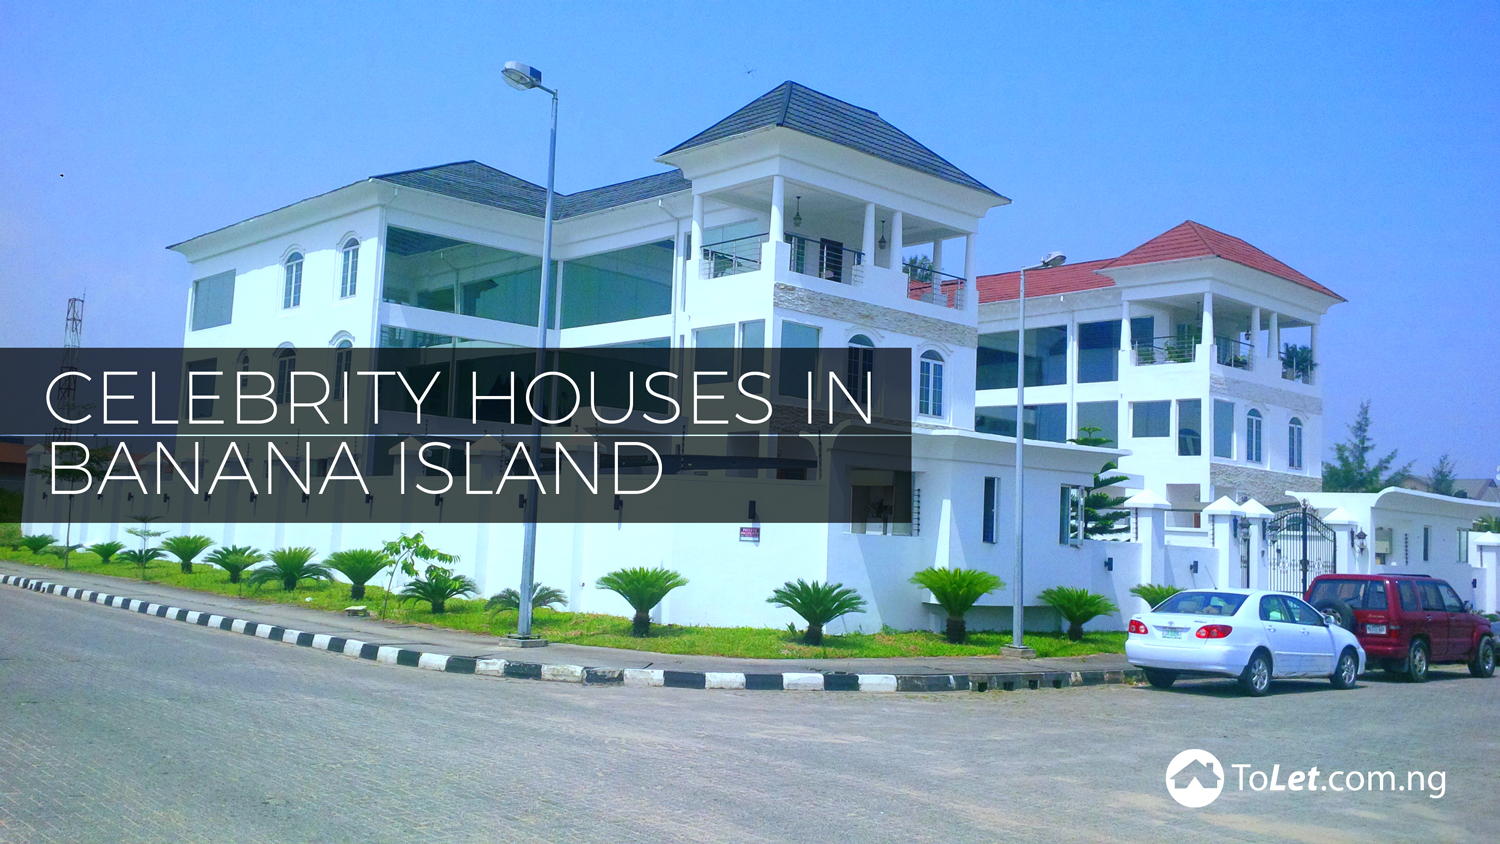 Celebrity houses in banana island propertypro insider